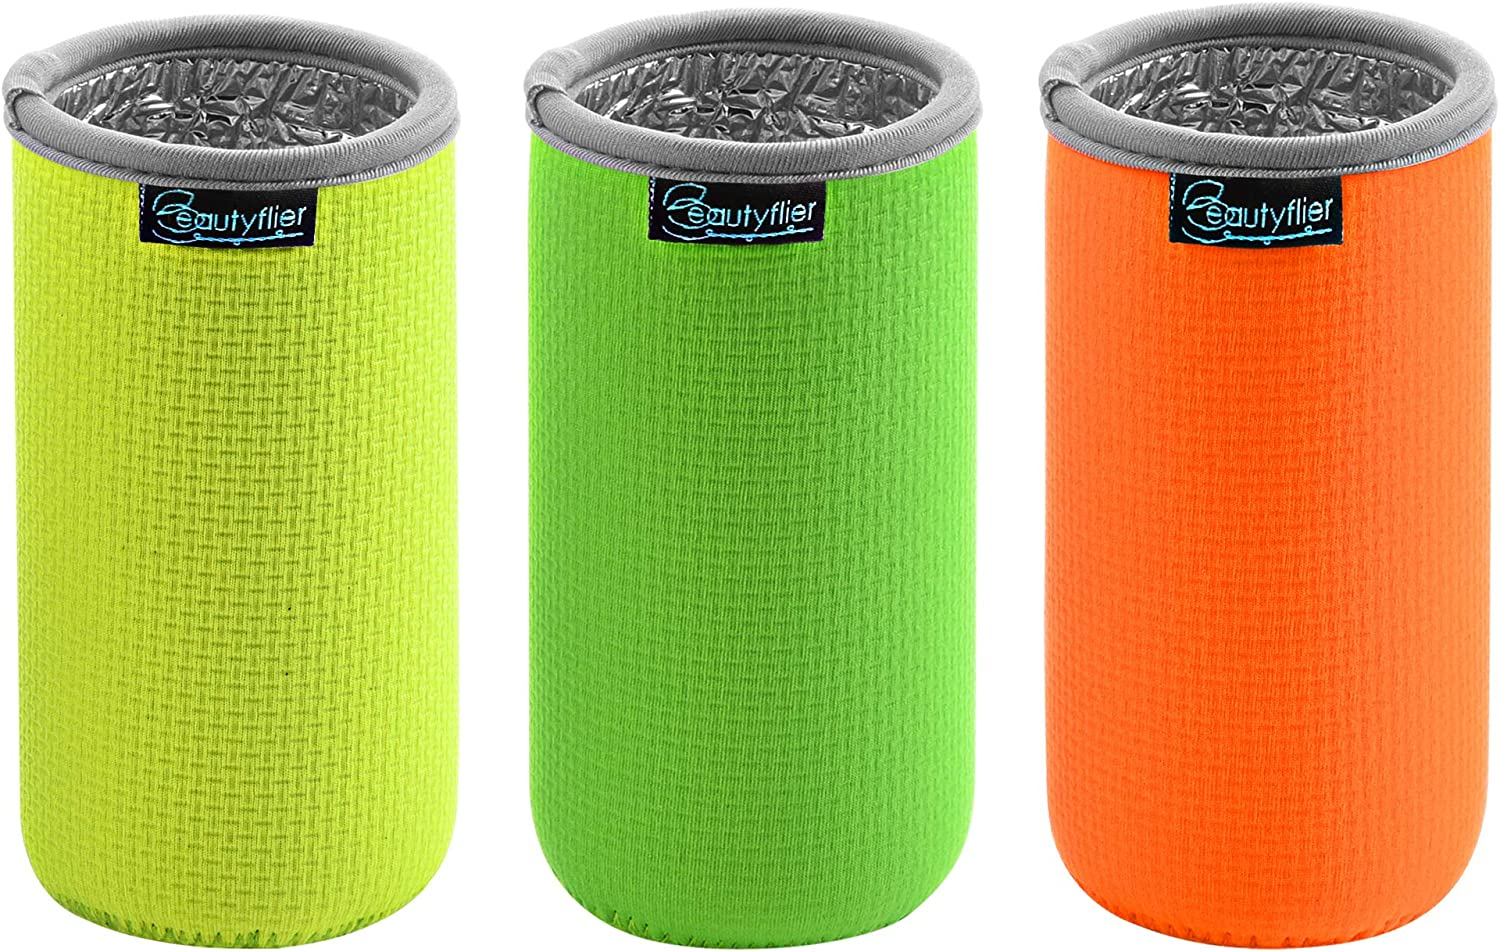 Beautyflier 3 PCS Anti-Slip Embossed Neoprene Bottle Insulator Sleeve 3mm Thick Collapsible Drink Slim Can Cover for BBQ Camping Party (12oz(Fluorescent Yellow/Green/Orange)Aluminium Film